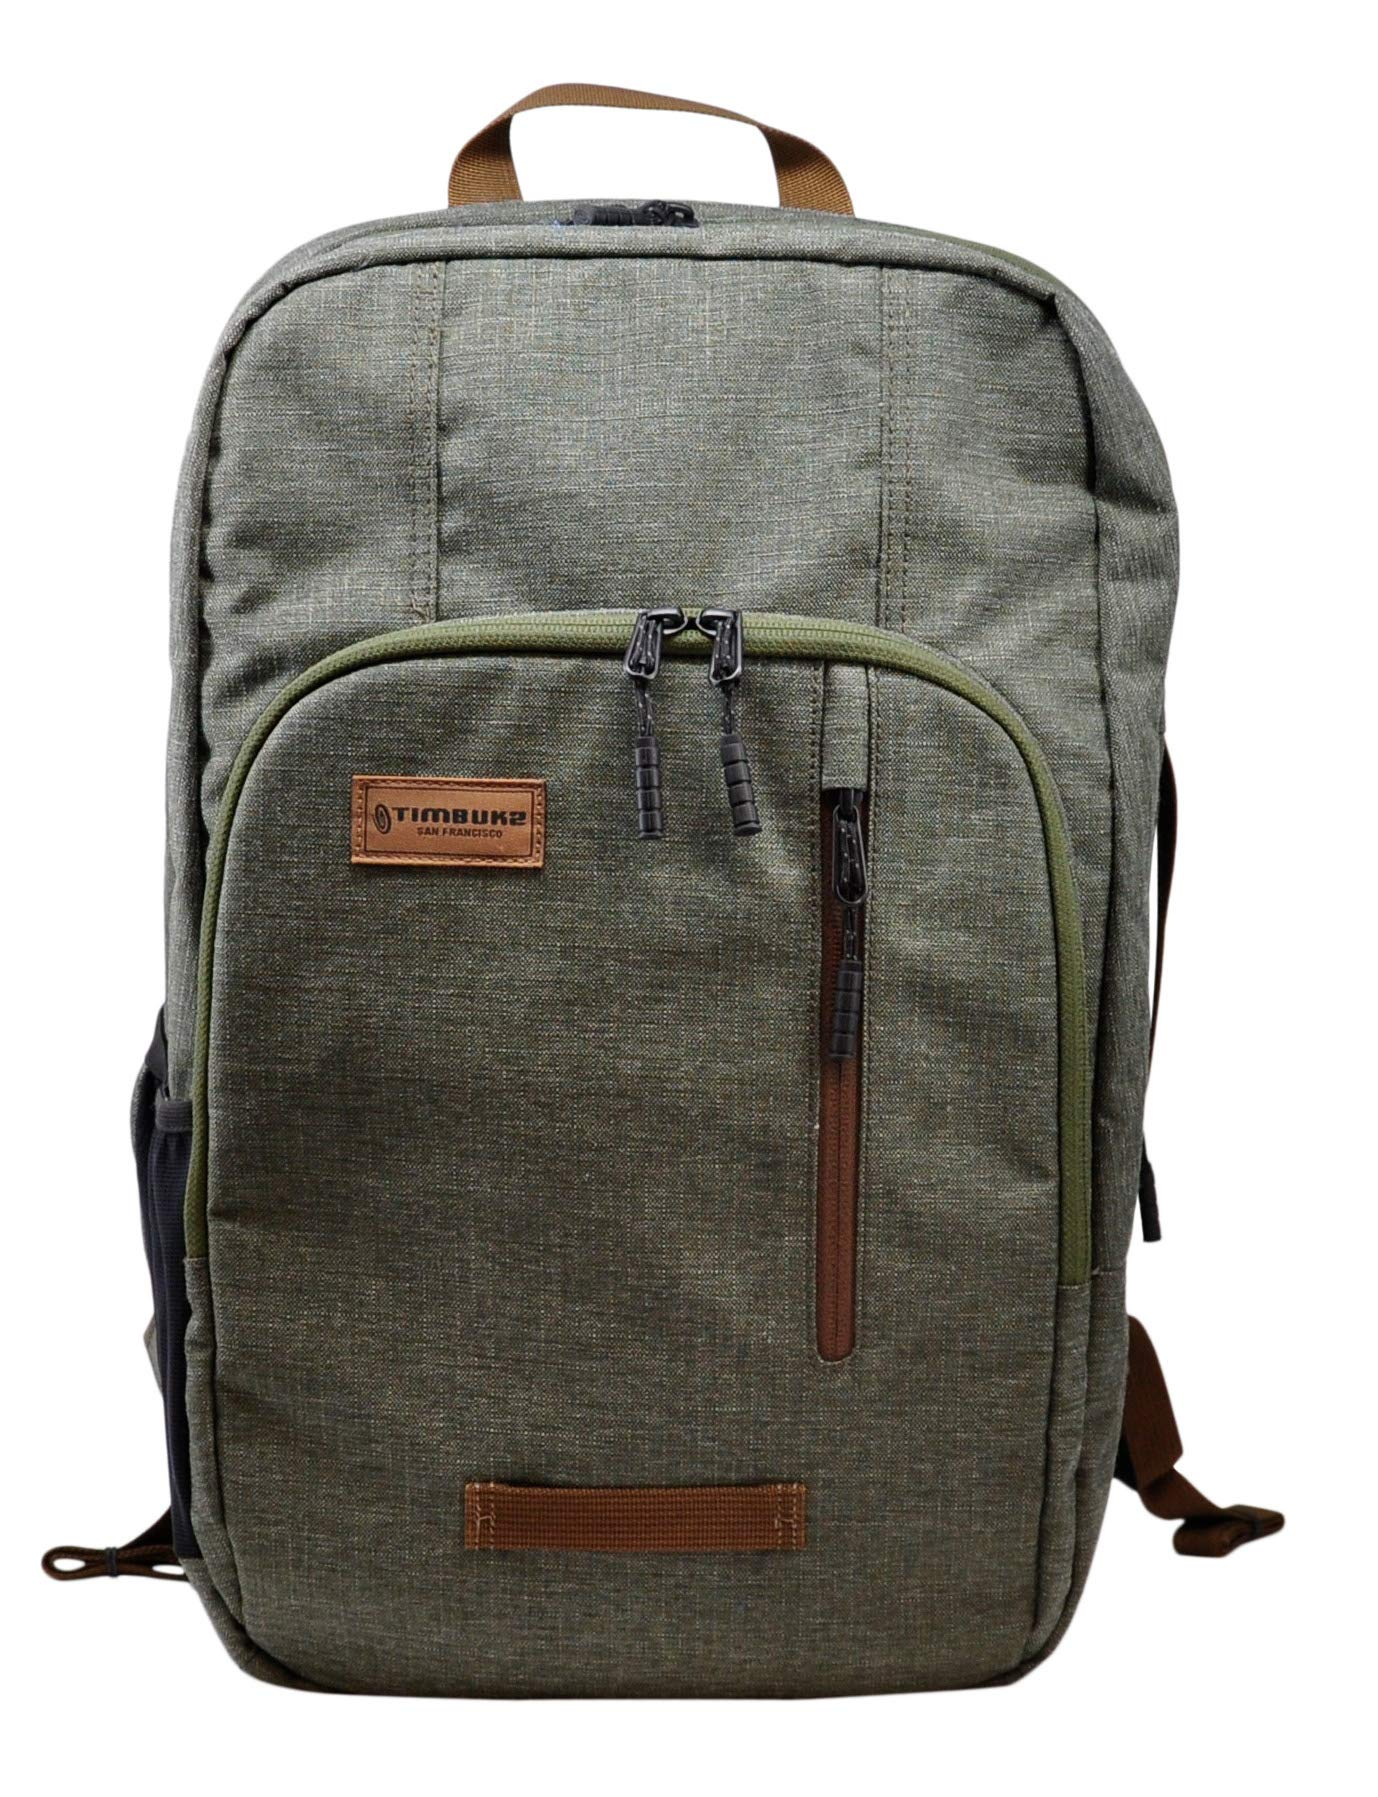 Timbuk2 Uptown Laptop Backpack (Forest)